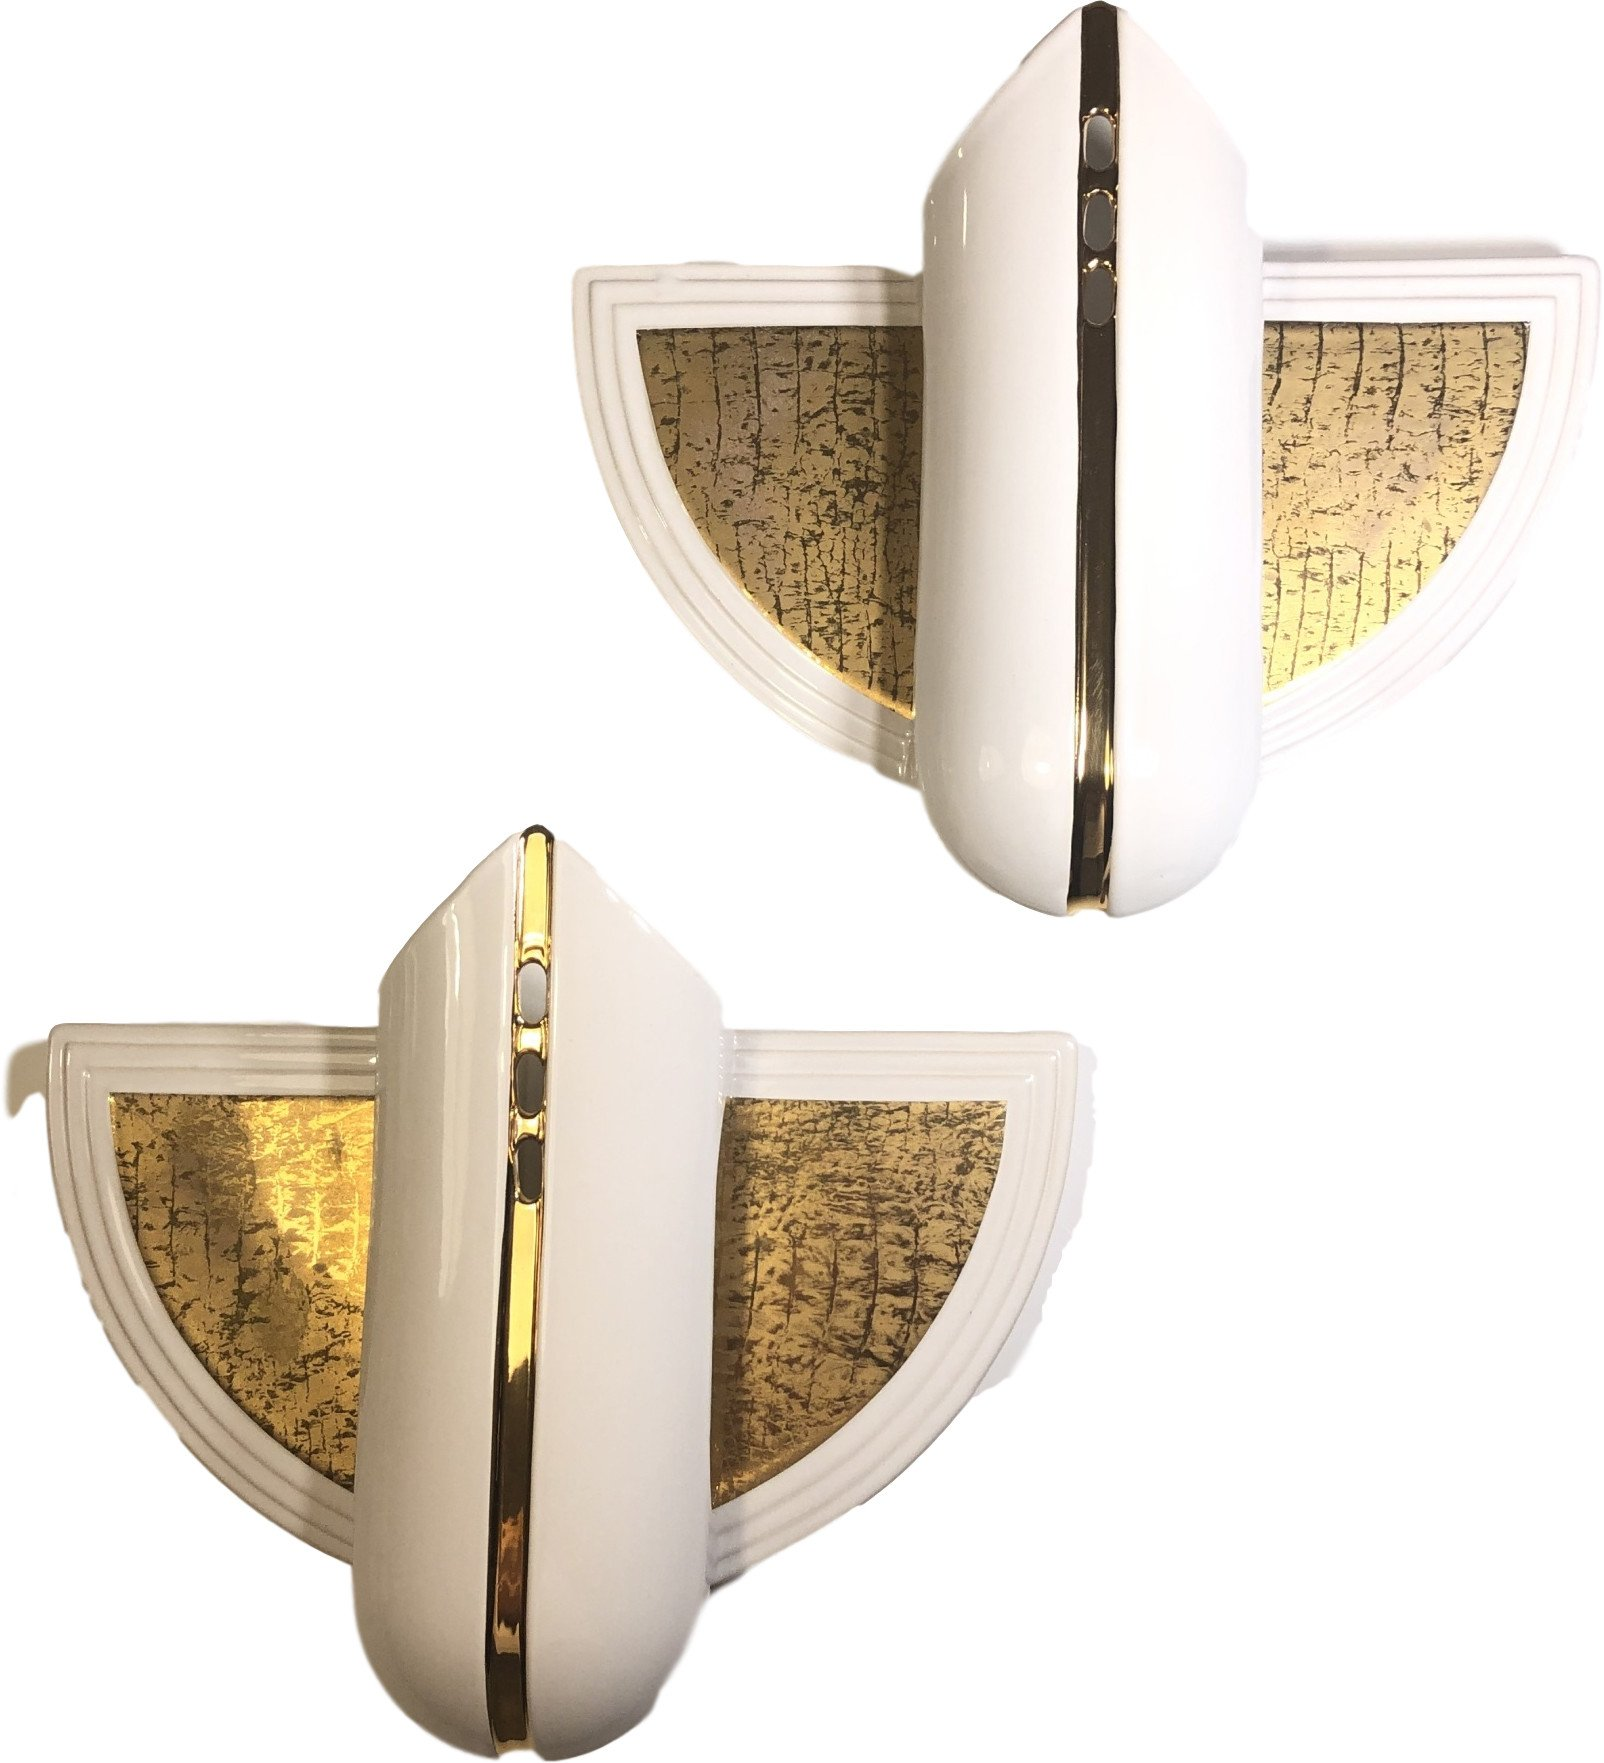 Pair of Wall Lamps, PAN, Germany, 1980s